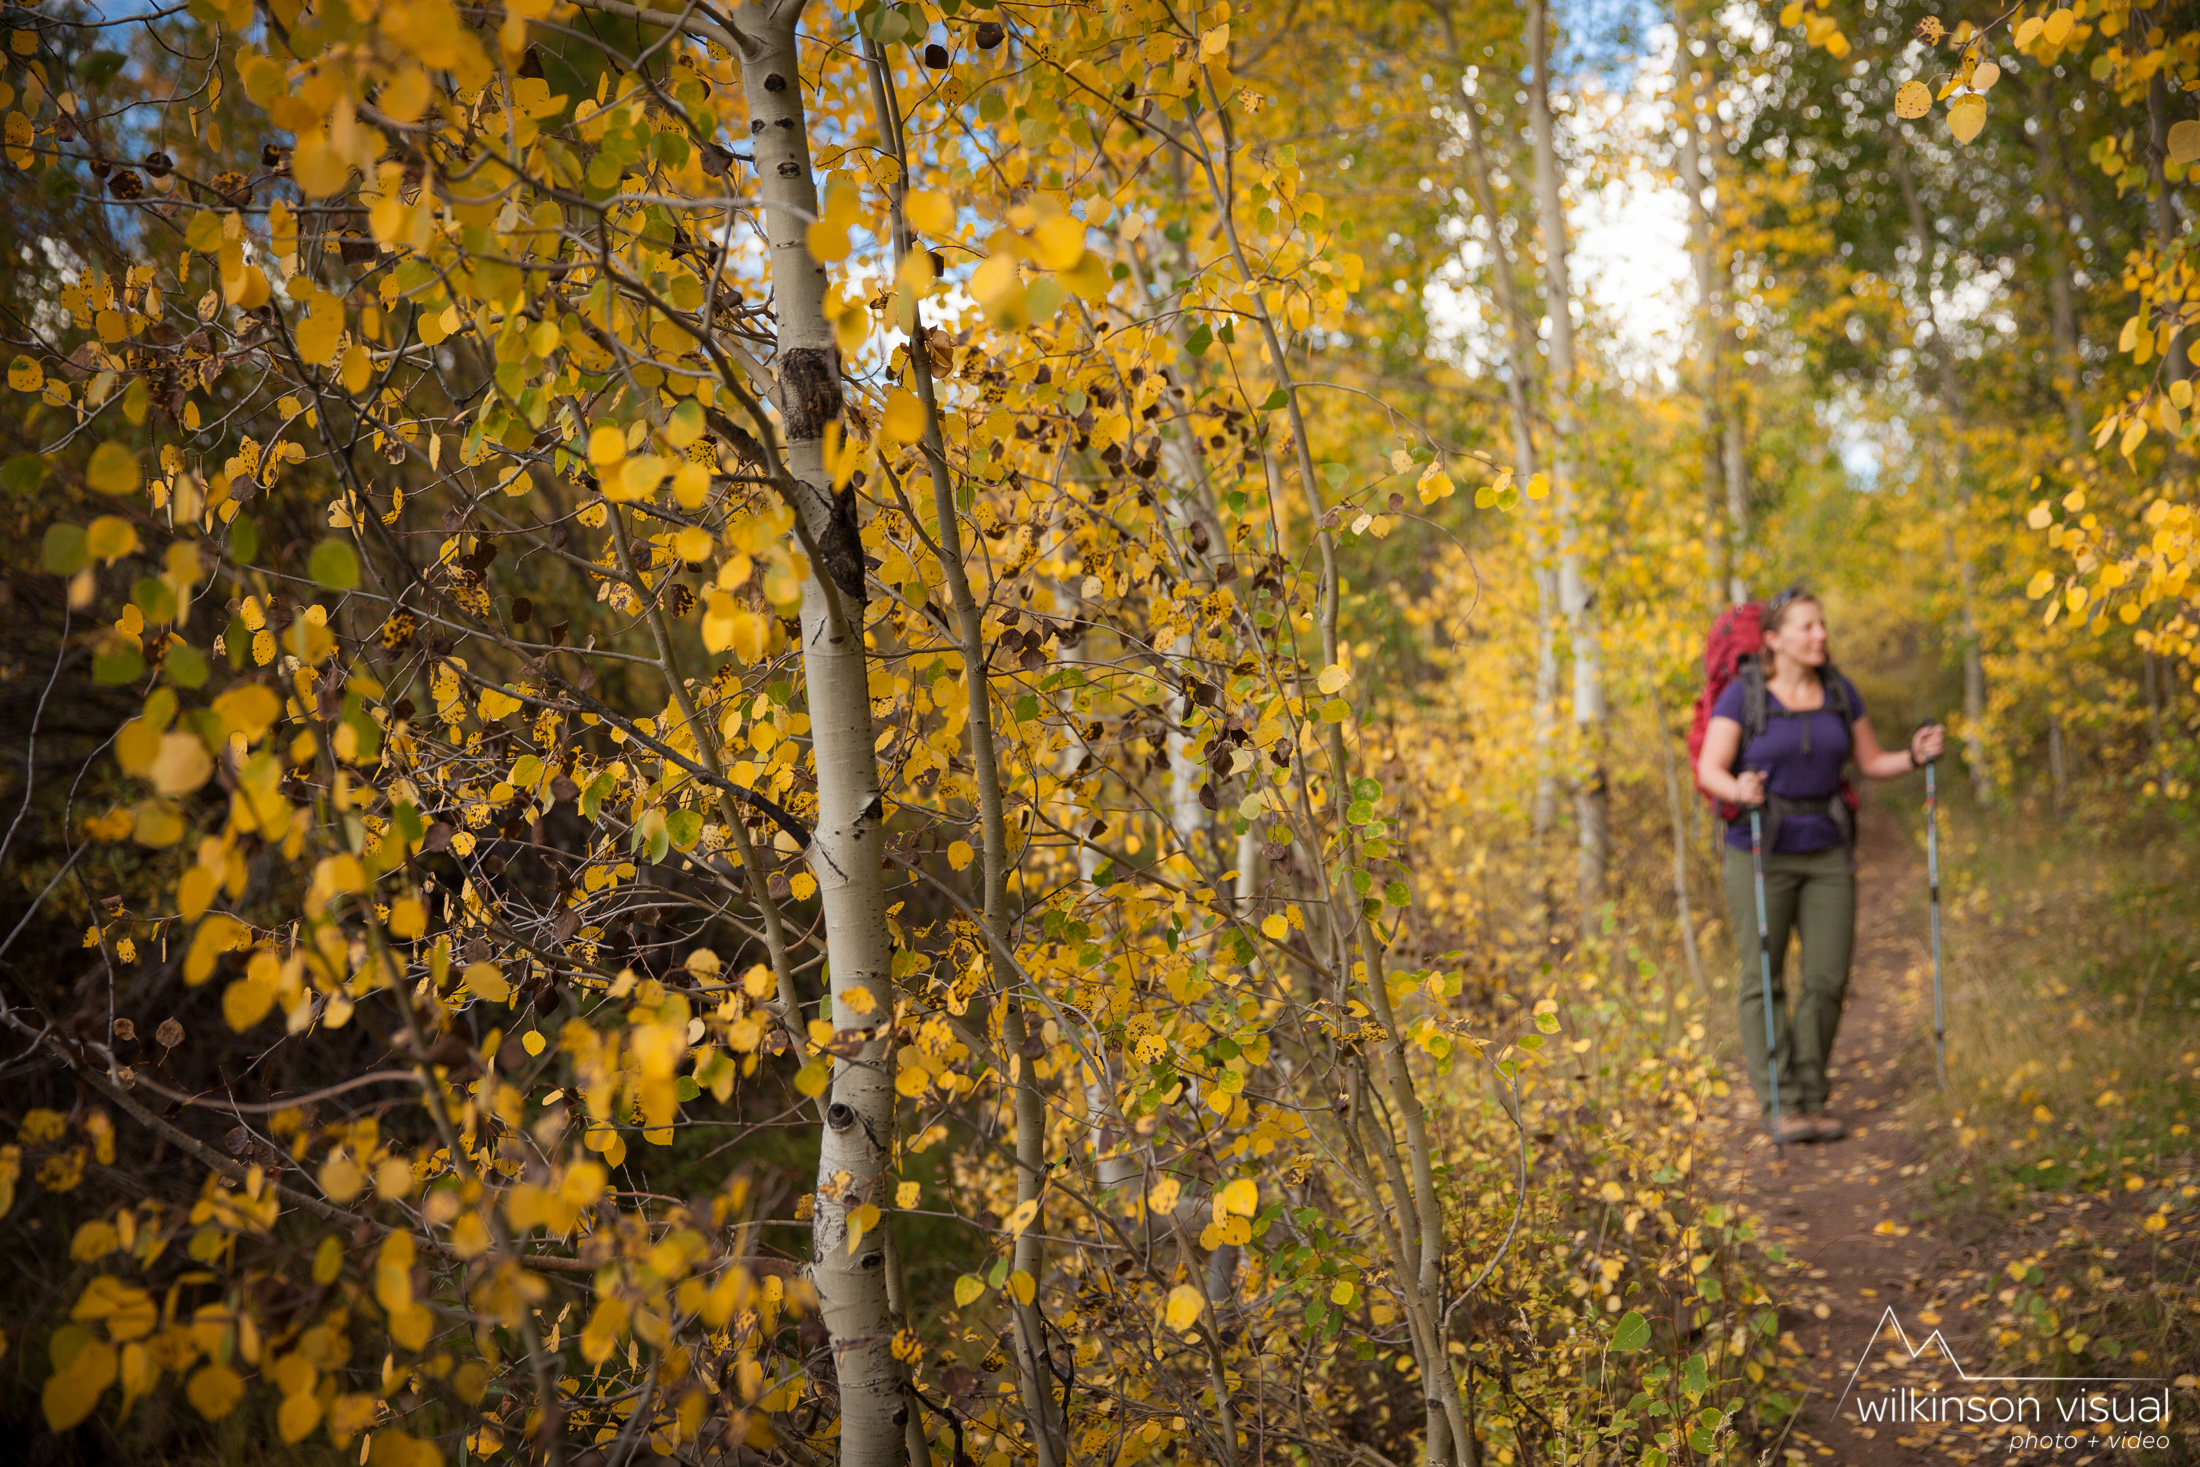 Jennifer Meunier stops to enjoy the colorful aspens while hiking in the San Juan National Forest, Colorado.